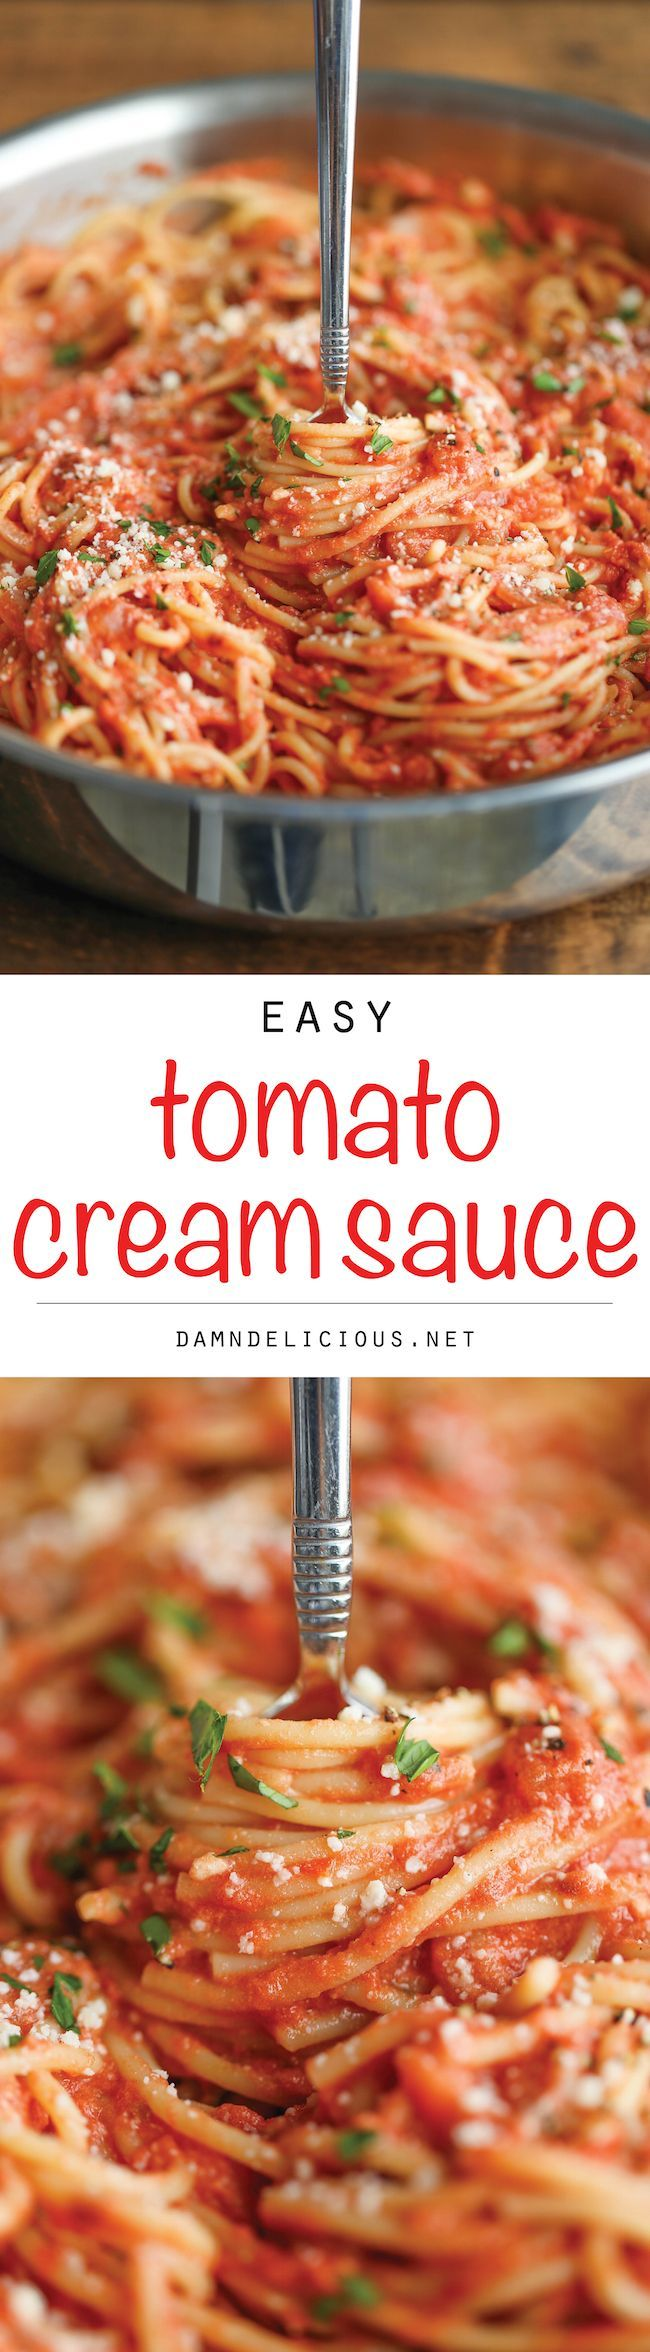 Spaghetti with Tomato Cream Sauce – Jazz up those boring spaghetti nights with this super easy, no-fuss cream sauce made completely from scratch!